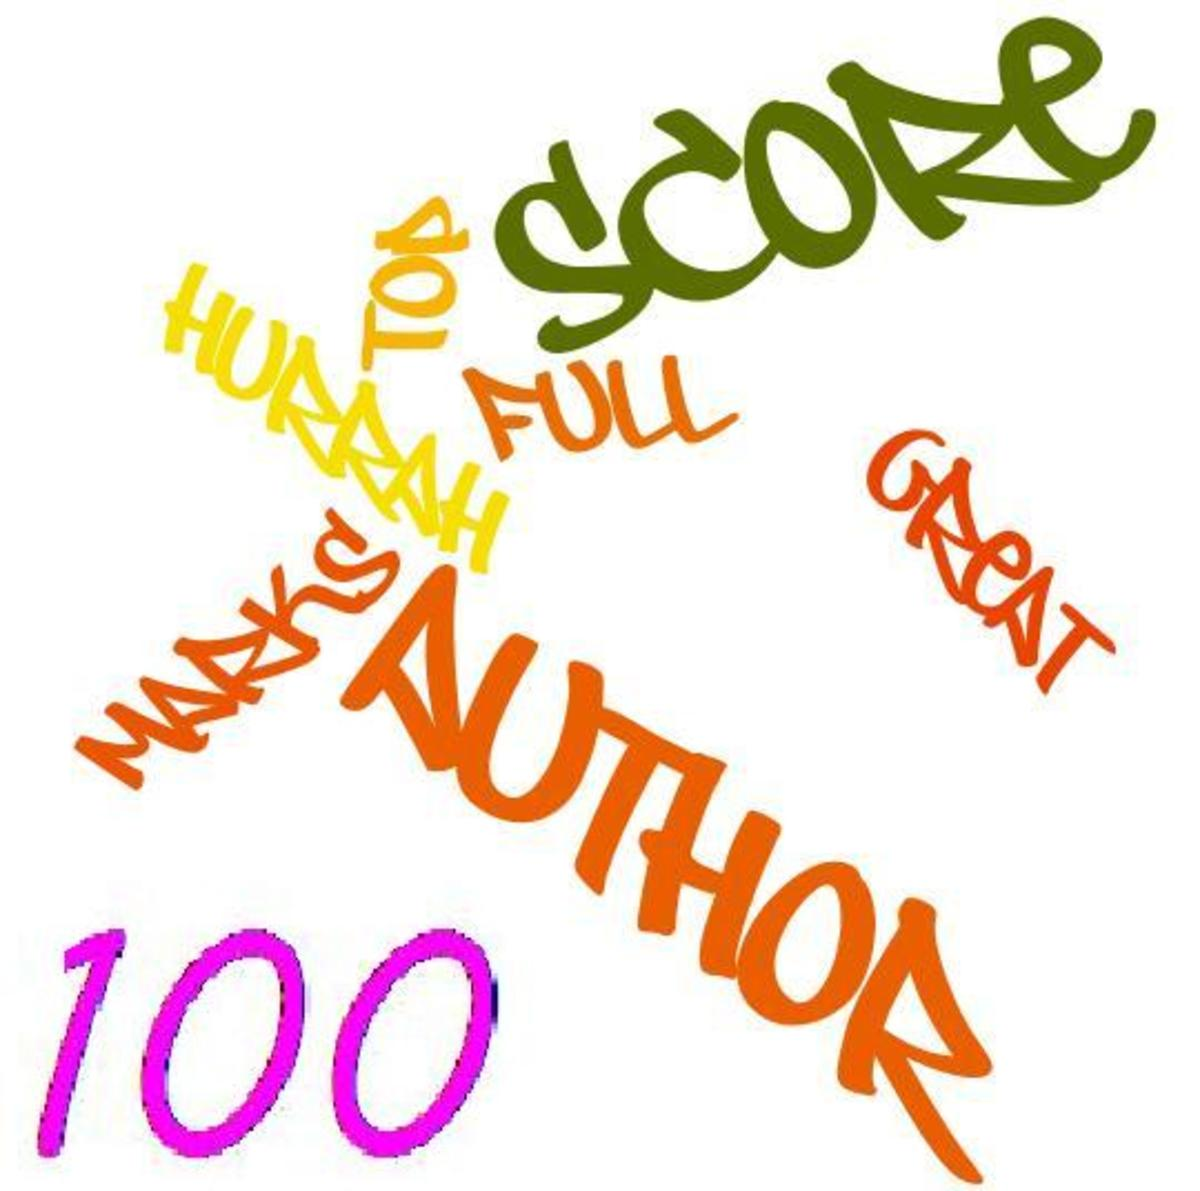 Author Score of 100